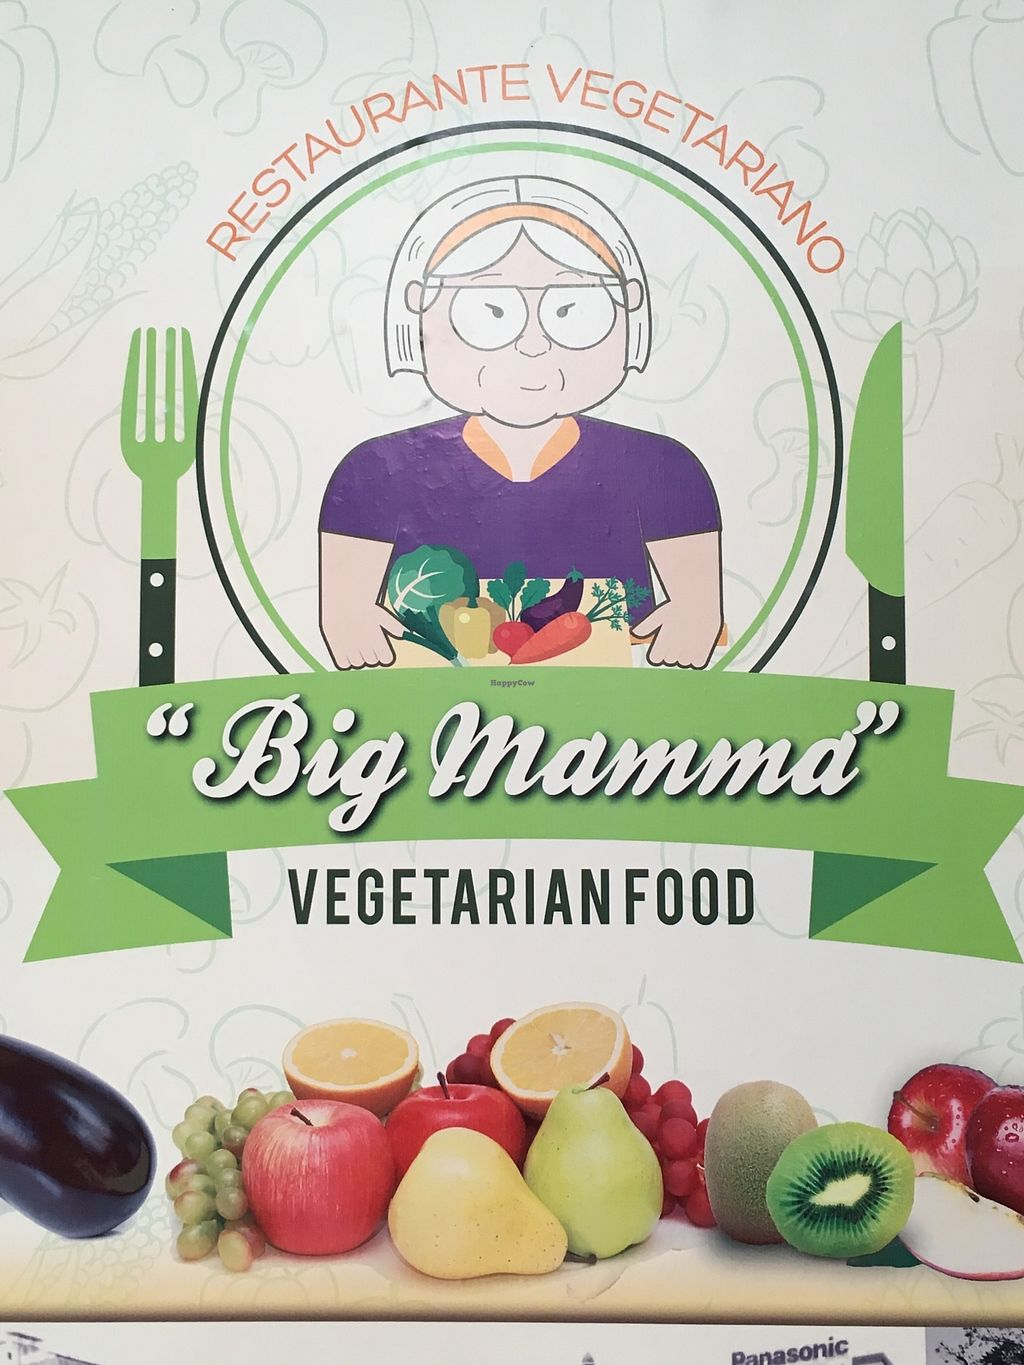 """Photo of Big Mamma Restaurante Vegetariano  by <a href=""""/members/profile/peas-full"""">peas-full</a> <br/>logo <br/> January 2, 2018  - <a href='/contact/abuse/image/108382/342056'>Report</a>"""